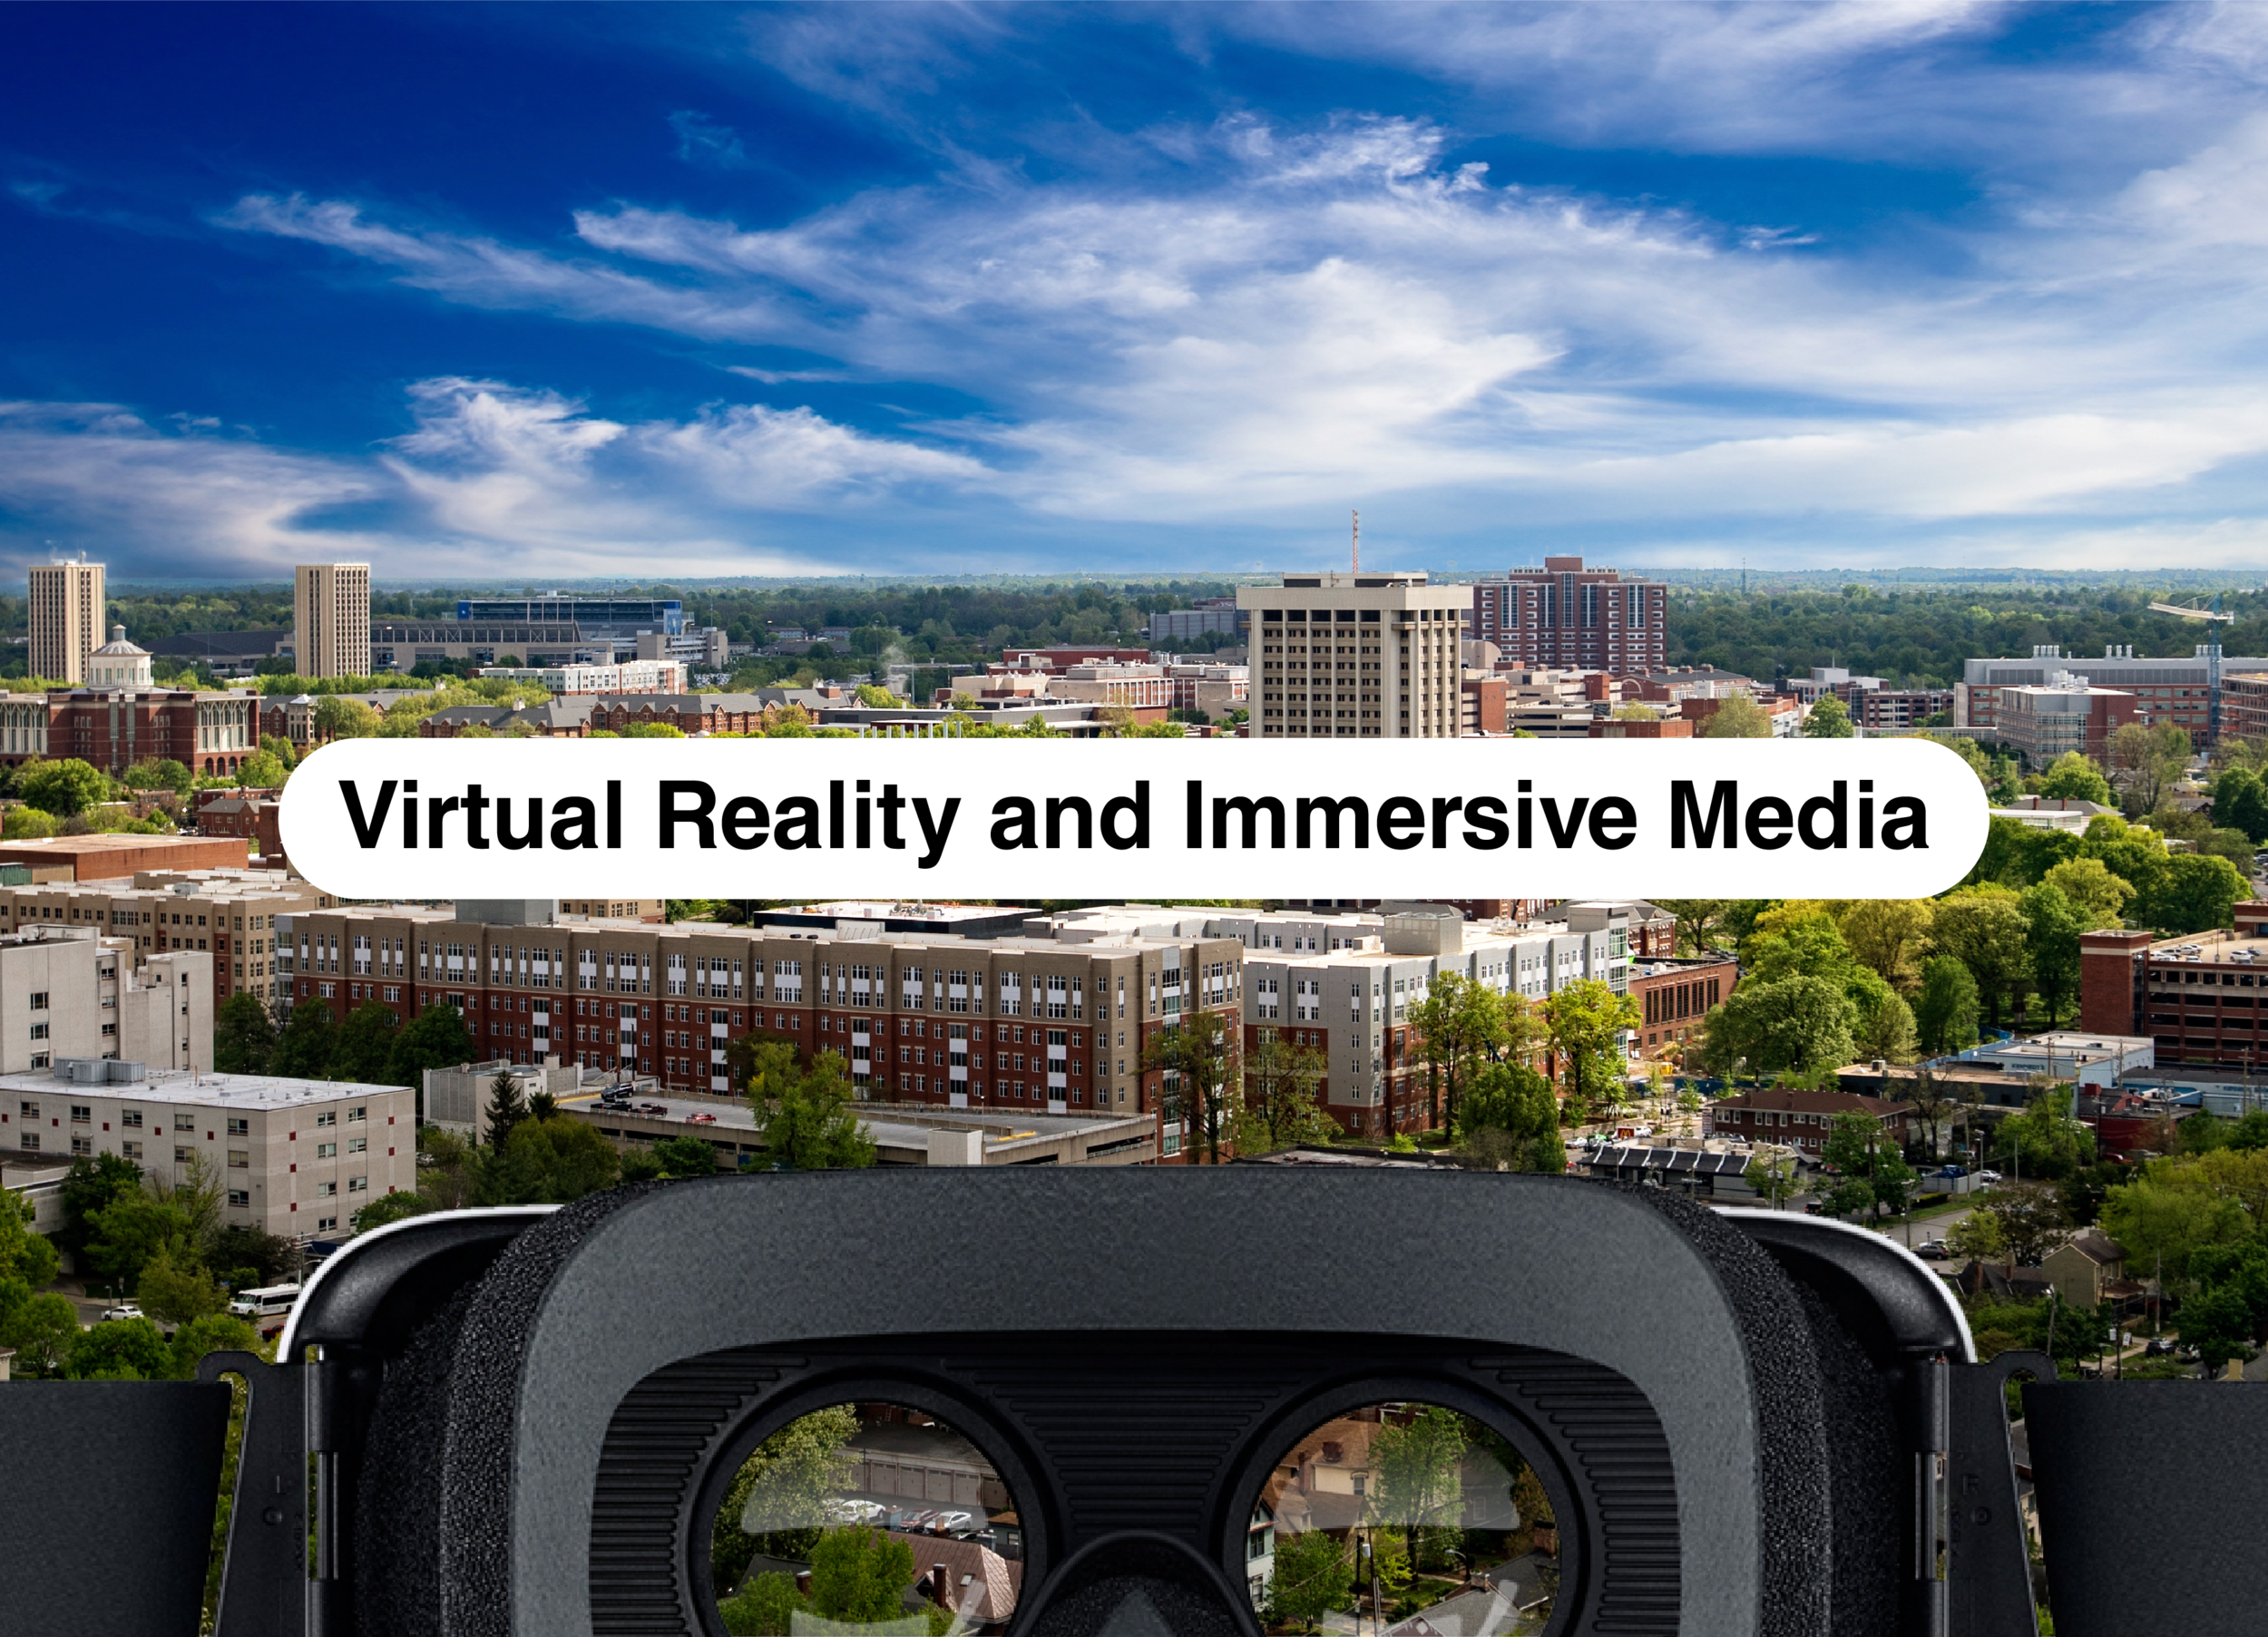 If a picture tells more than 1000 words, a virtual tour is worth a lot more. Sunrise360 provides VR production to businesses of any size a new way to engage and convert the target audience in China.